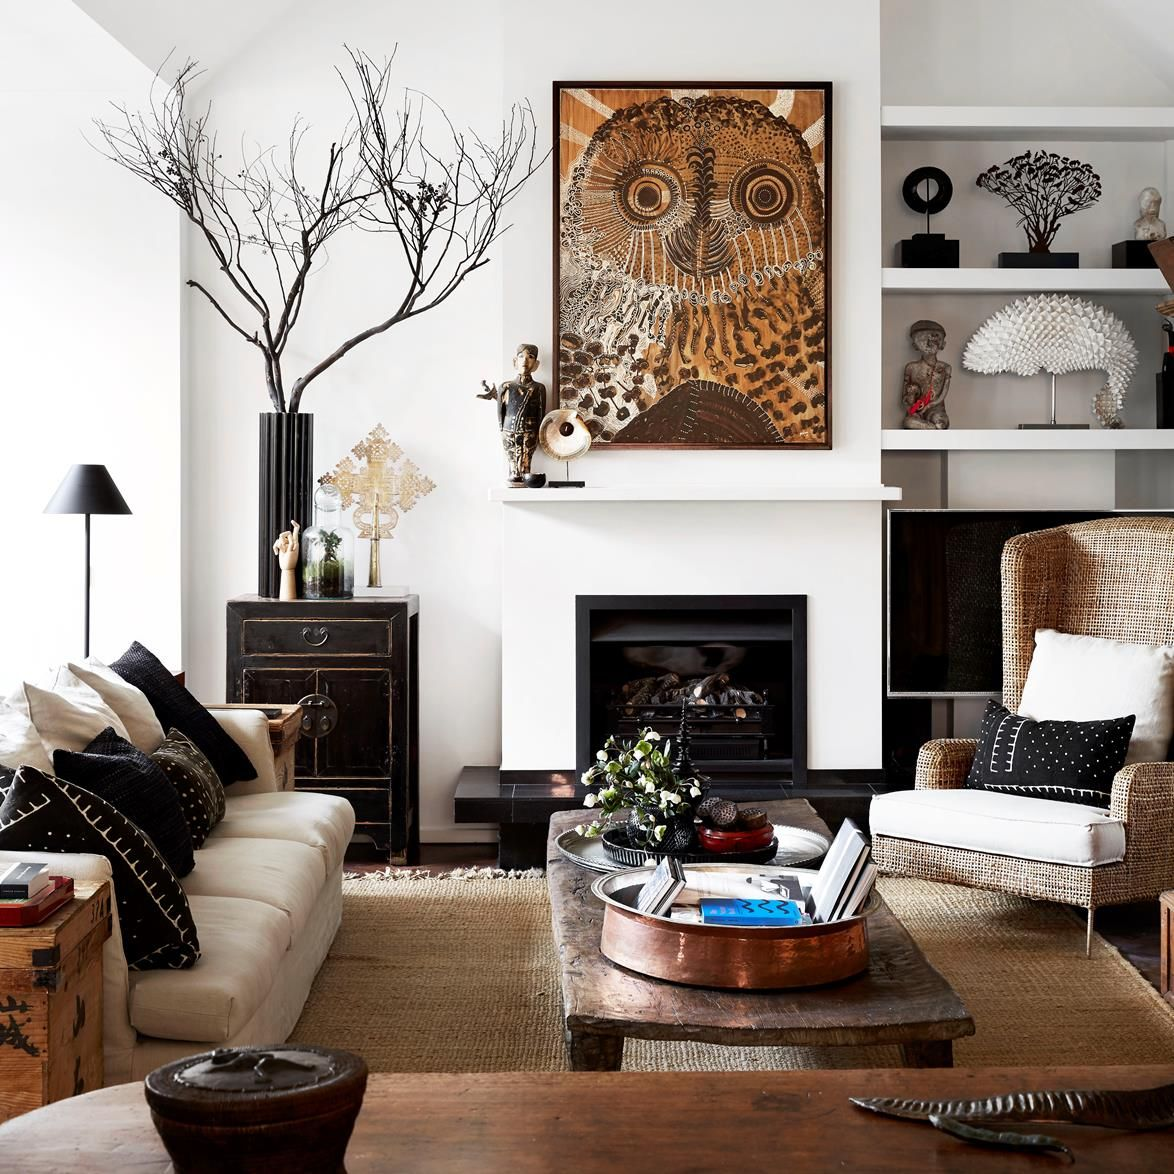 Inside the expertly curated home of a designing couple in Melbourne.